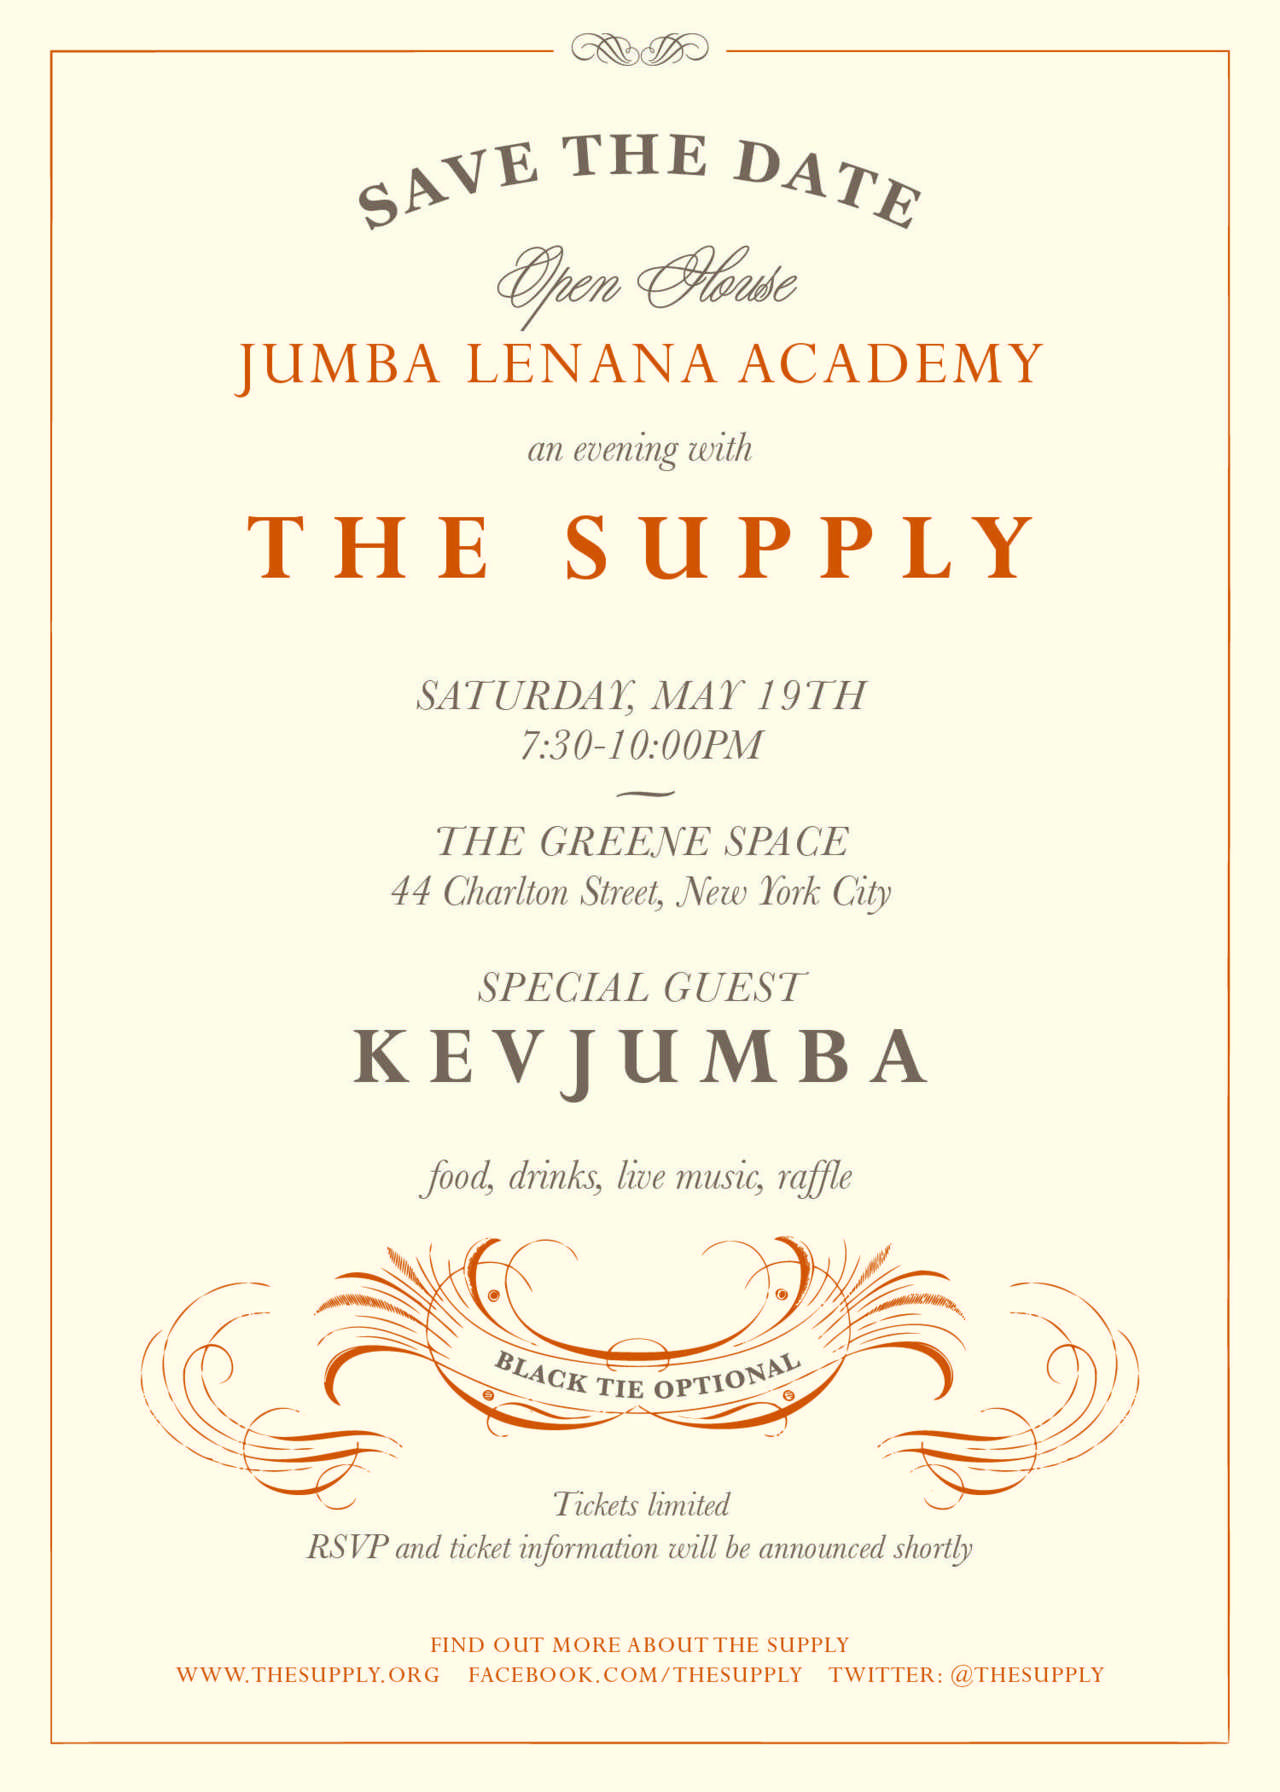 Our good friends at The Supply is holding a charity gala in NYC for the completion of Jumba Lenana Academy and in hope to raise $50,000 for a secondary school in Kenya! Come out and celebrate with live music, open bar, and special guest Kevjumba. You don't want to miss out on this great event for a good cause. For more information and tickets check out the event page below :) http://www.eventbrite.com/event/3307590091/efblike